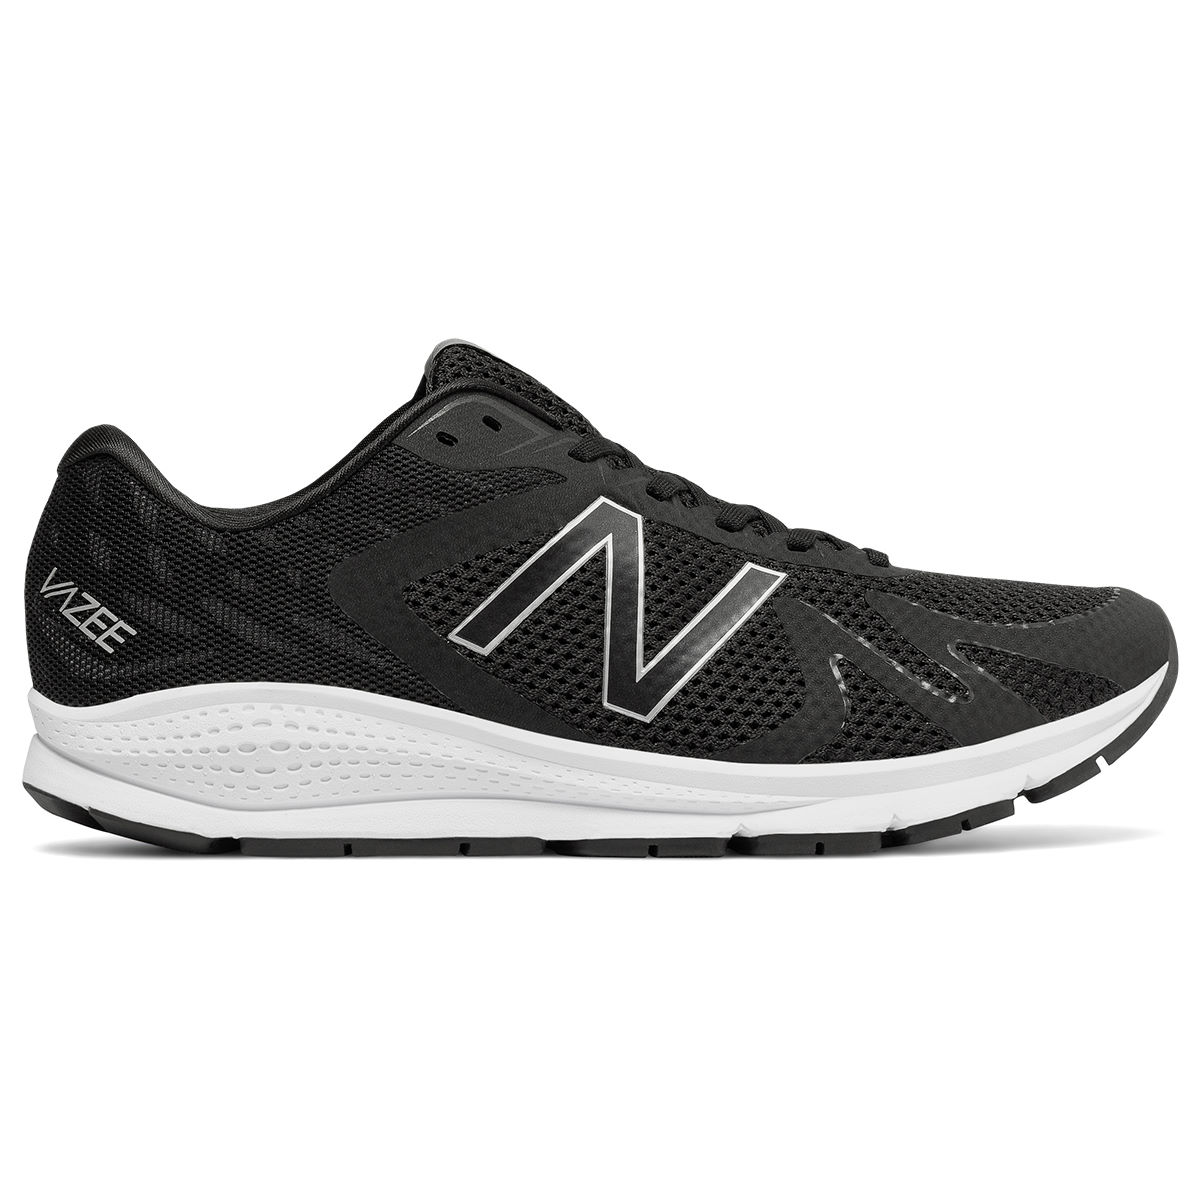 Can You Stretch Running Shoes